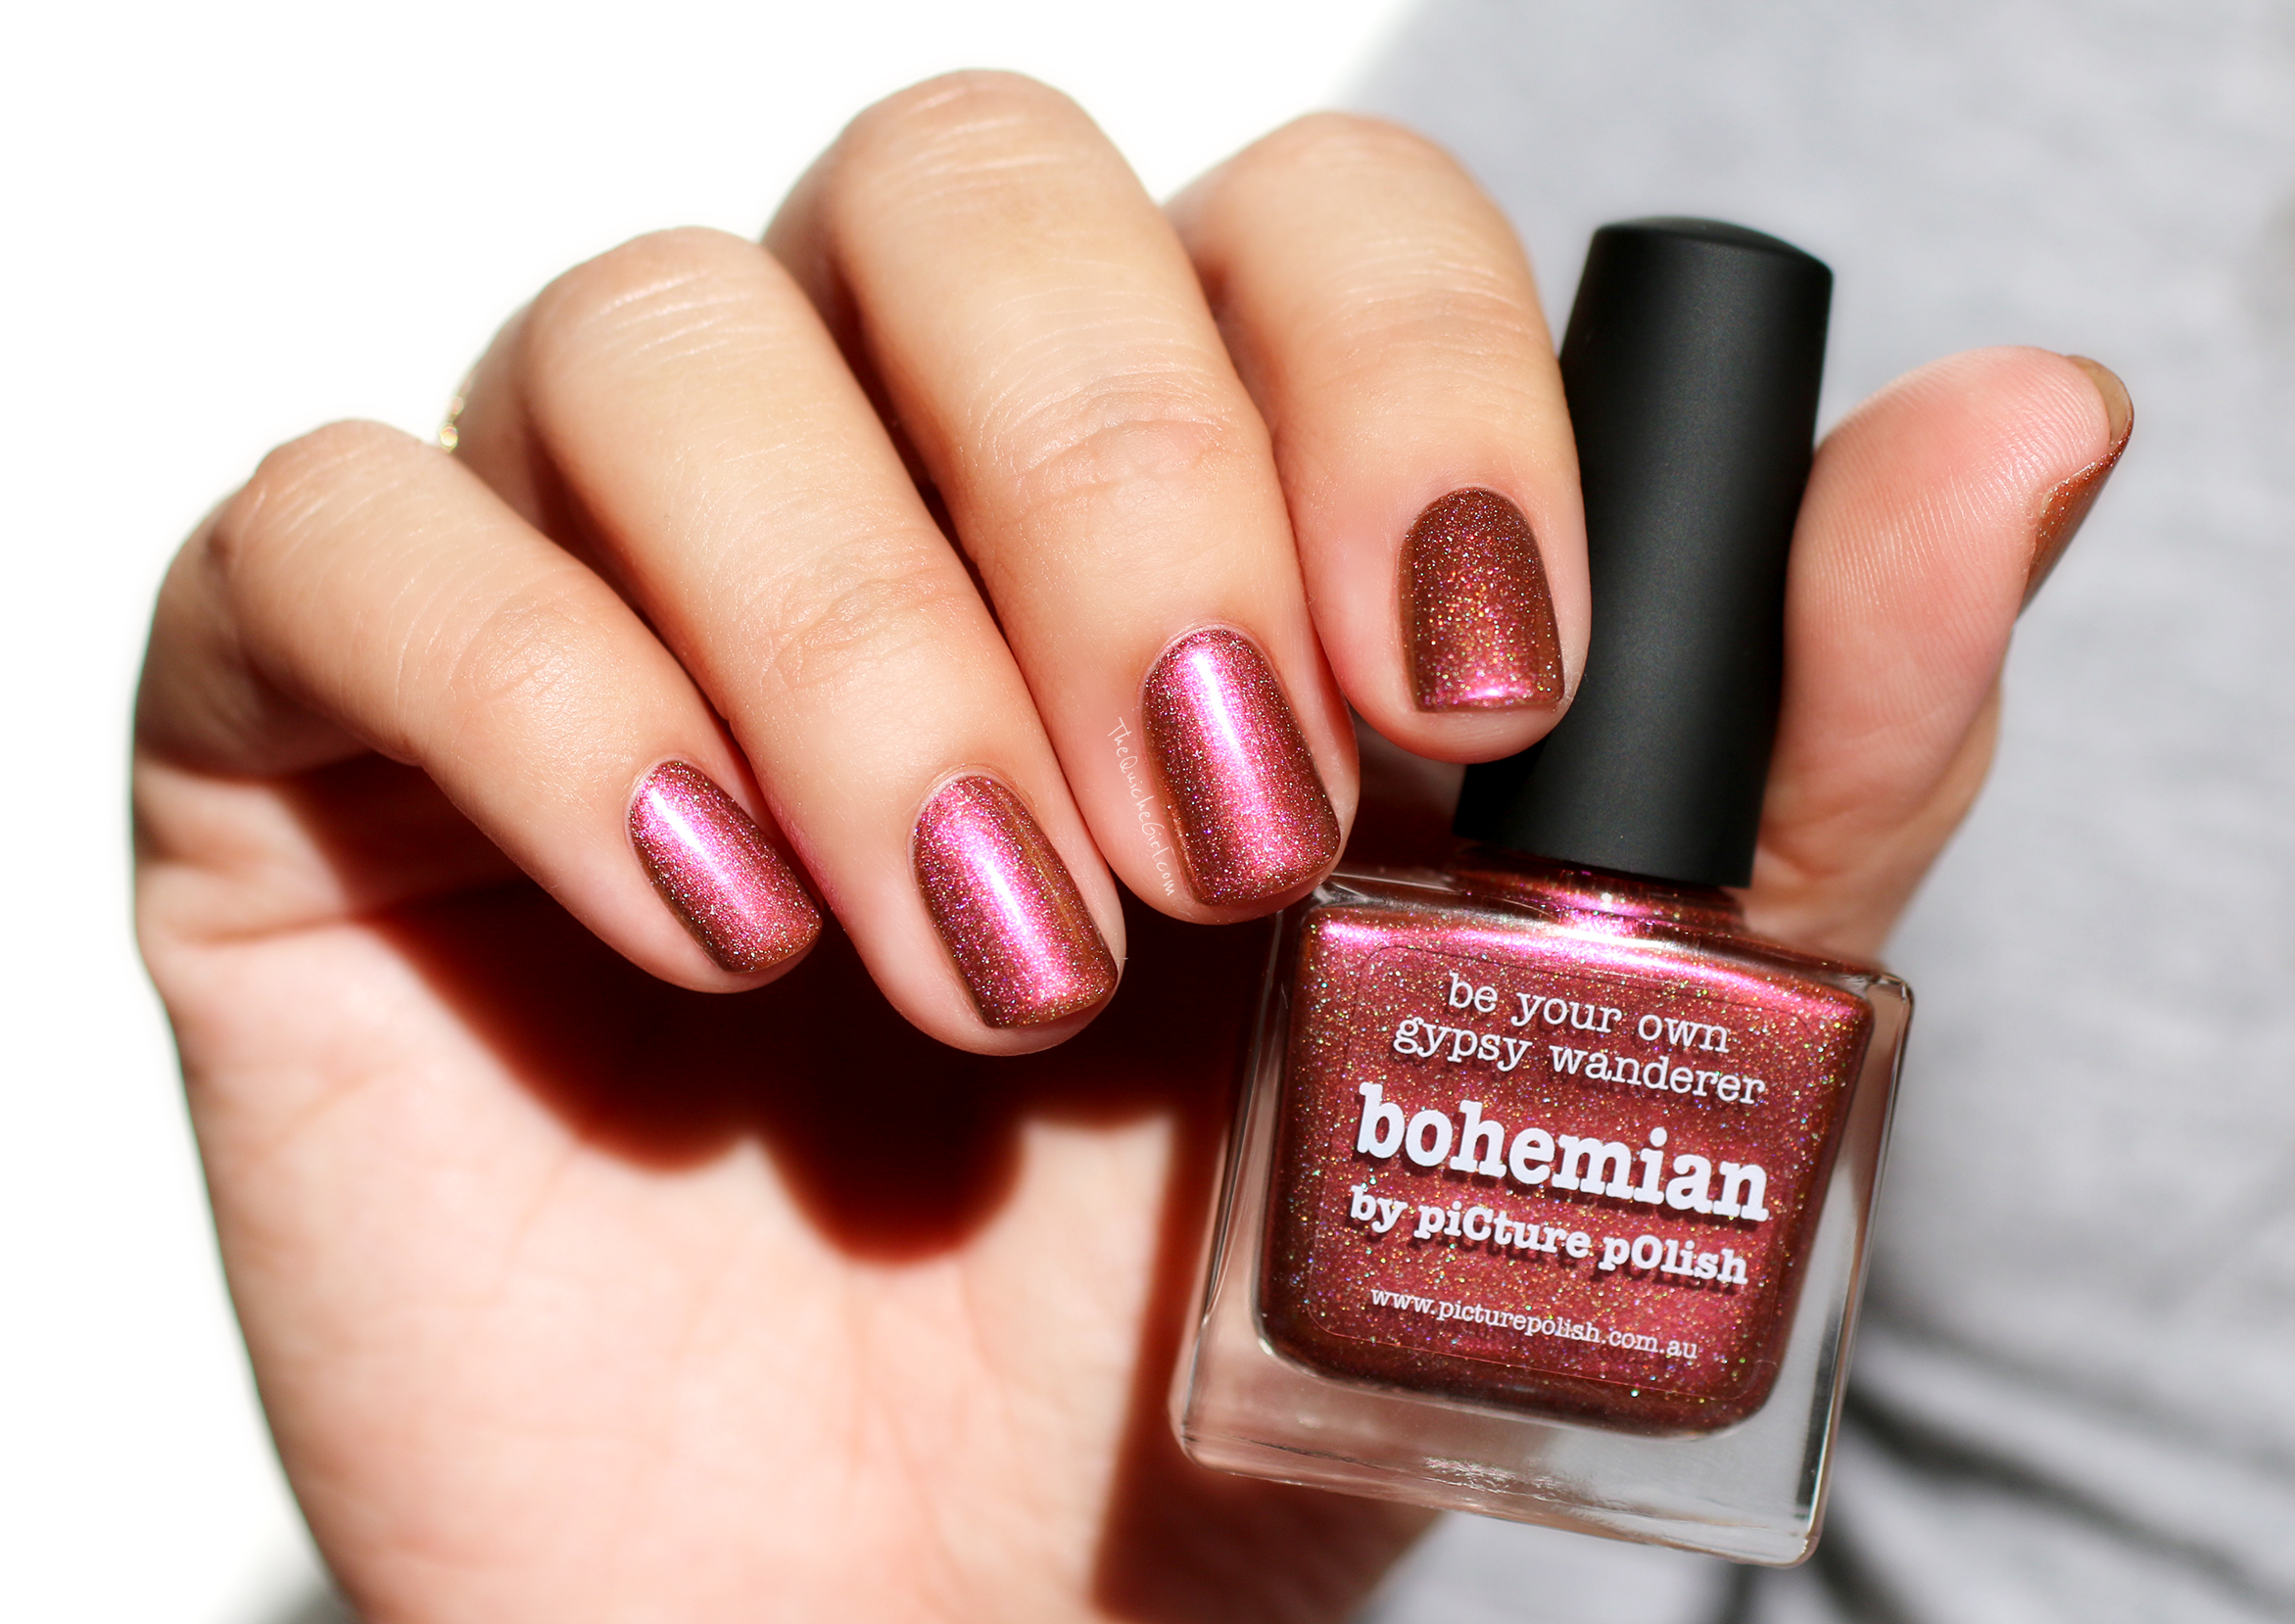 bohemian, packaging, picture polish, QuicheGirl